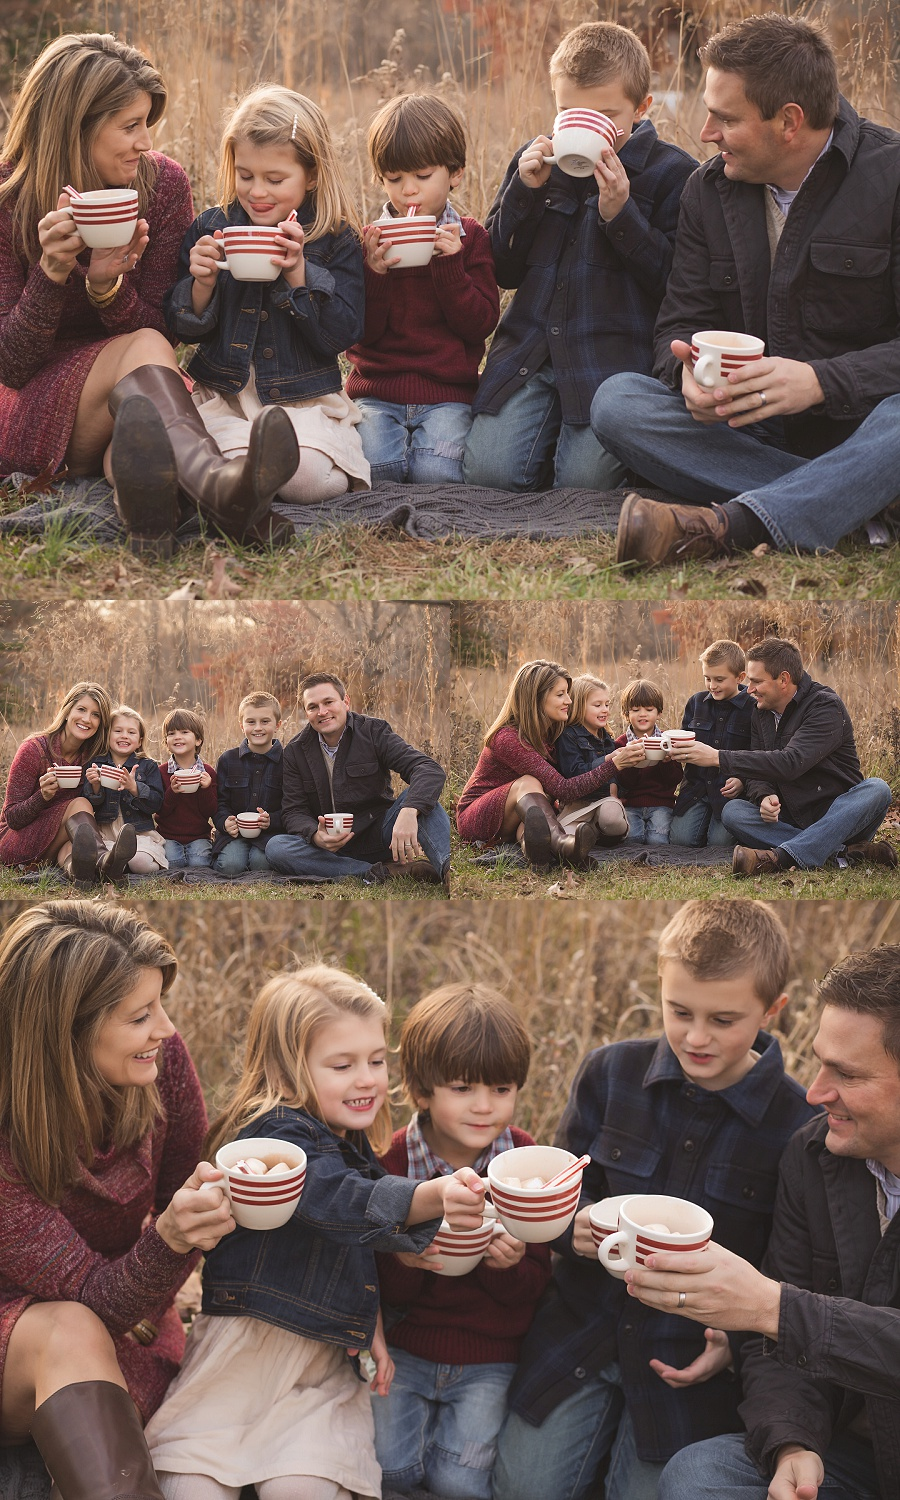 Winter family session in the woods   Tonya Teran Photography - Bethesda, MD Newborn Baby and Family Photography